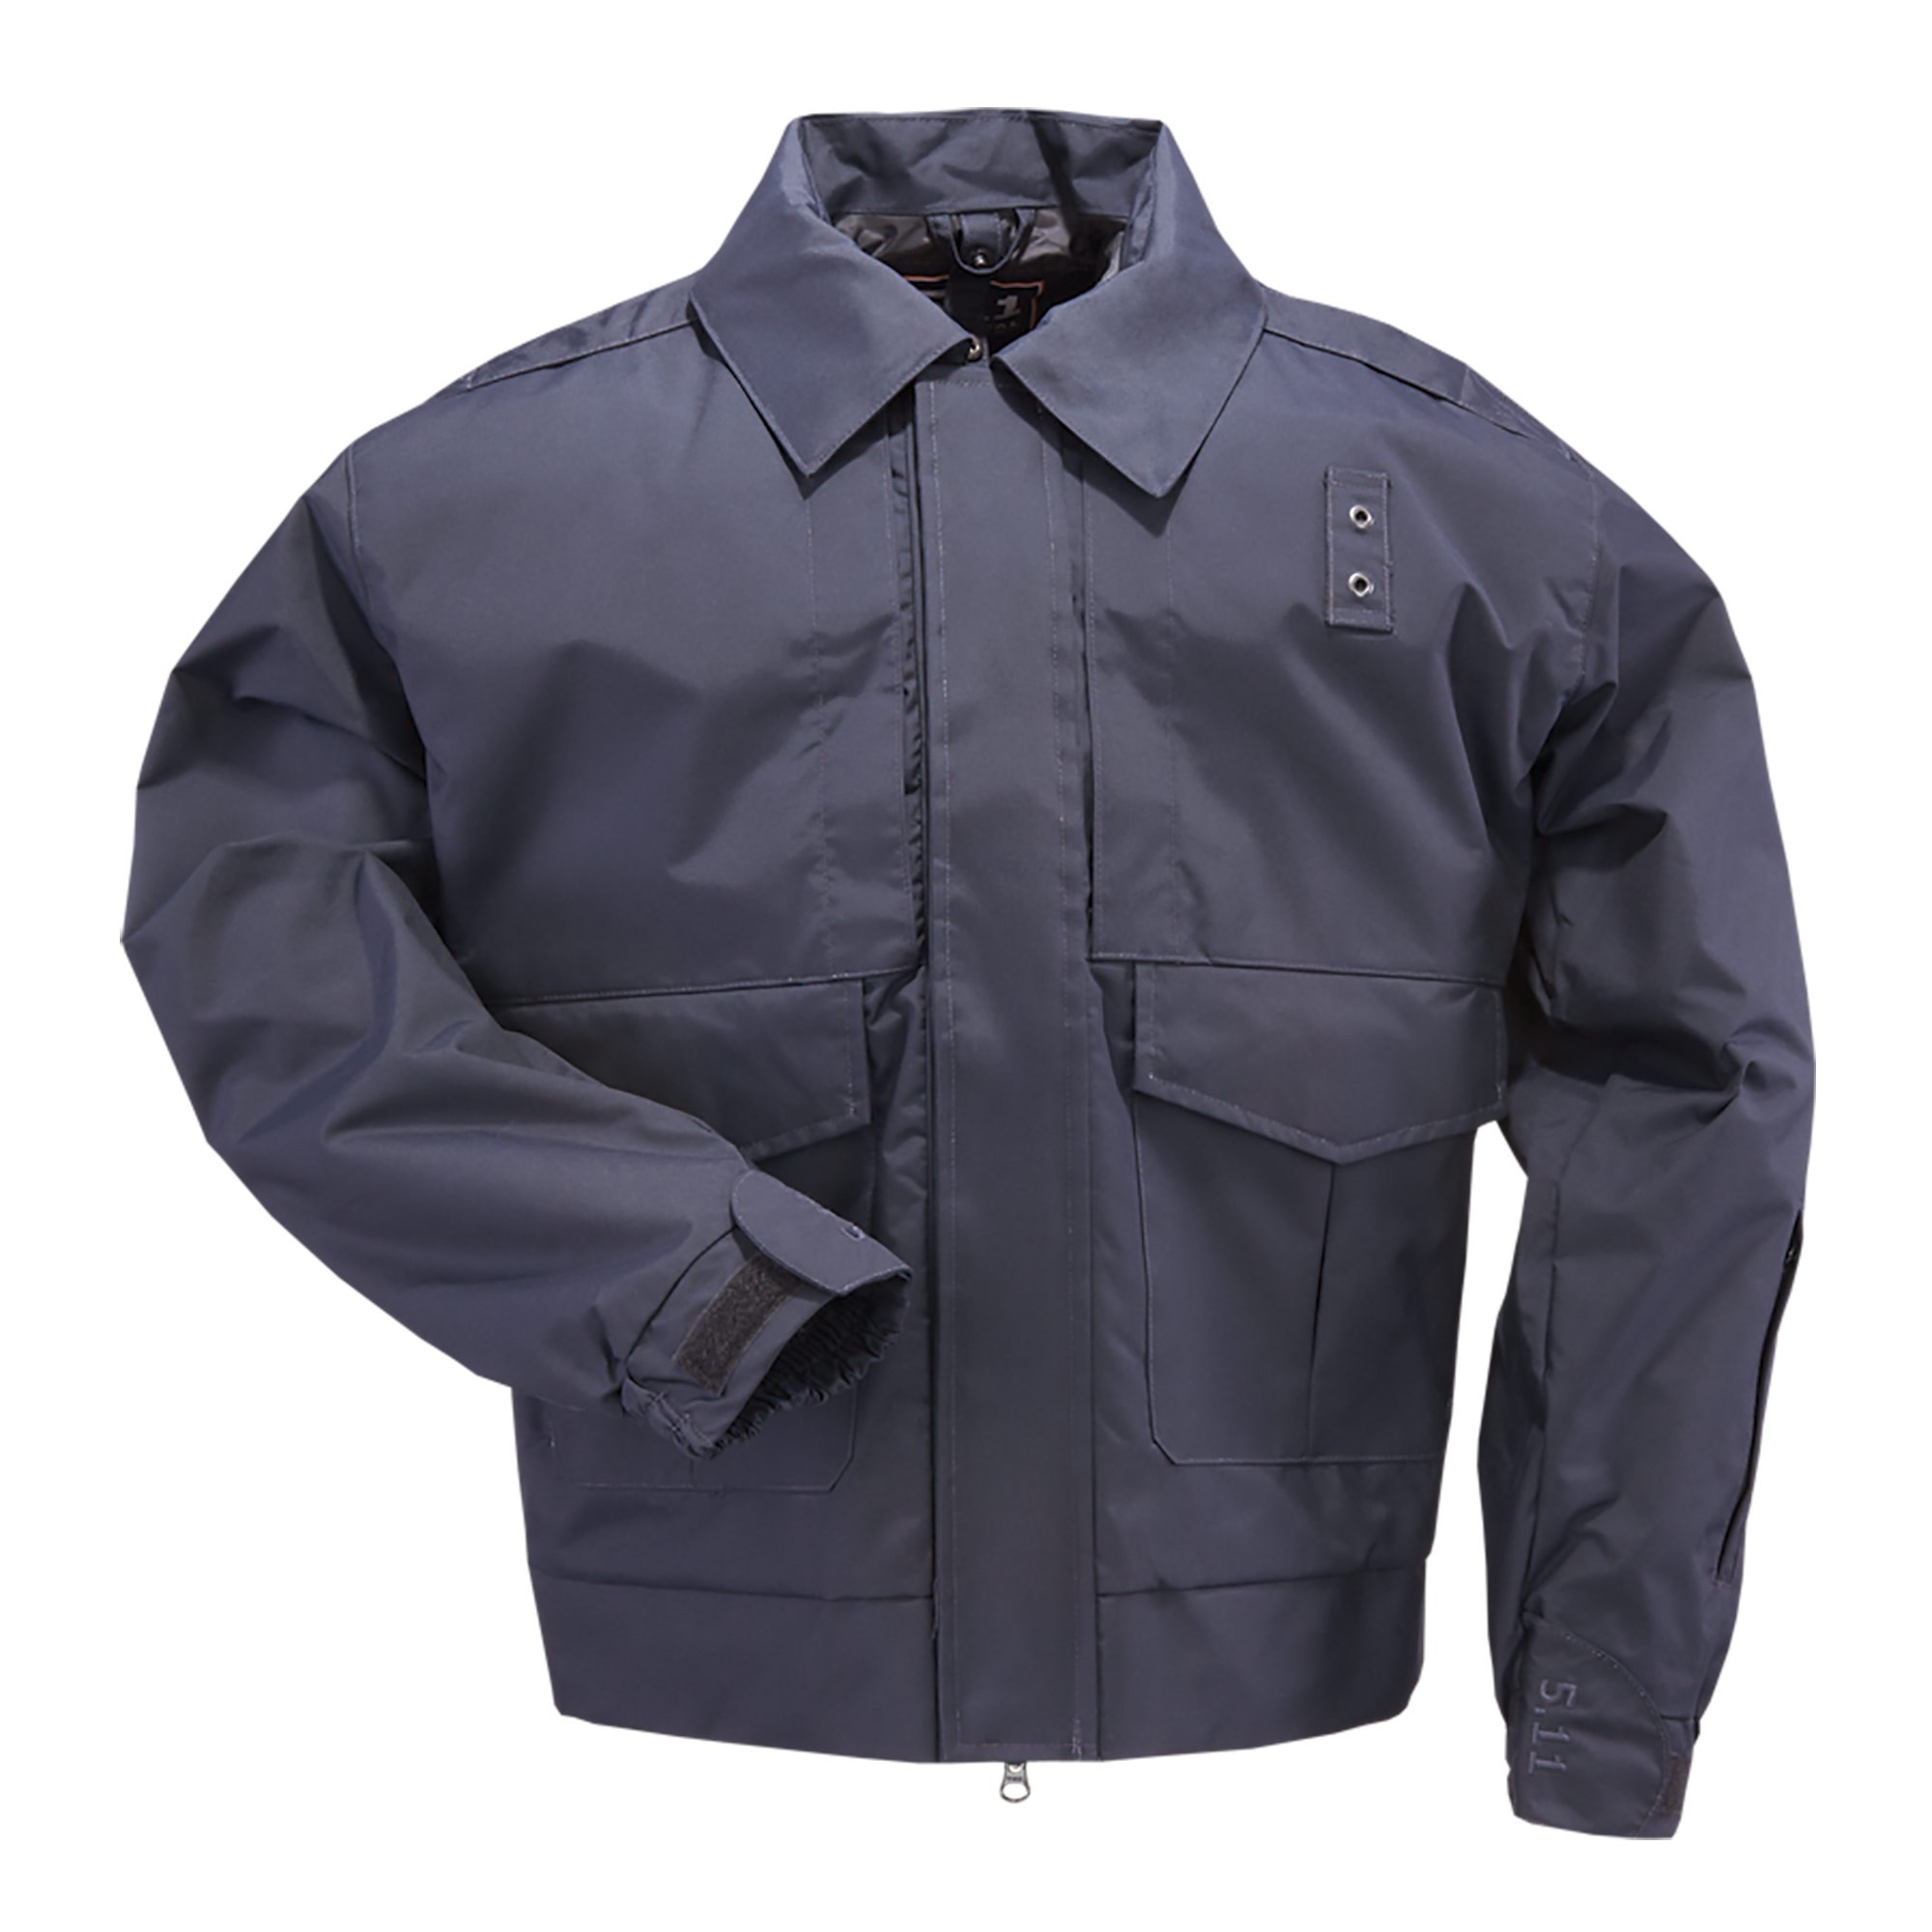 5.11 Mens 4-in-1 Patrol Jacket 48027